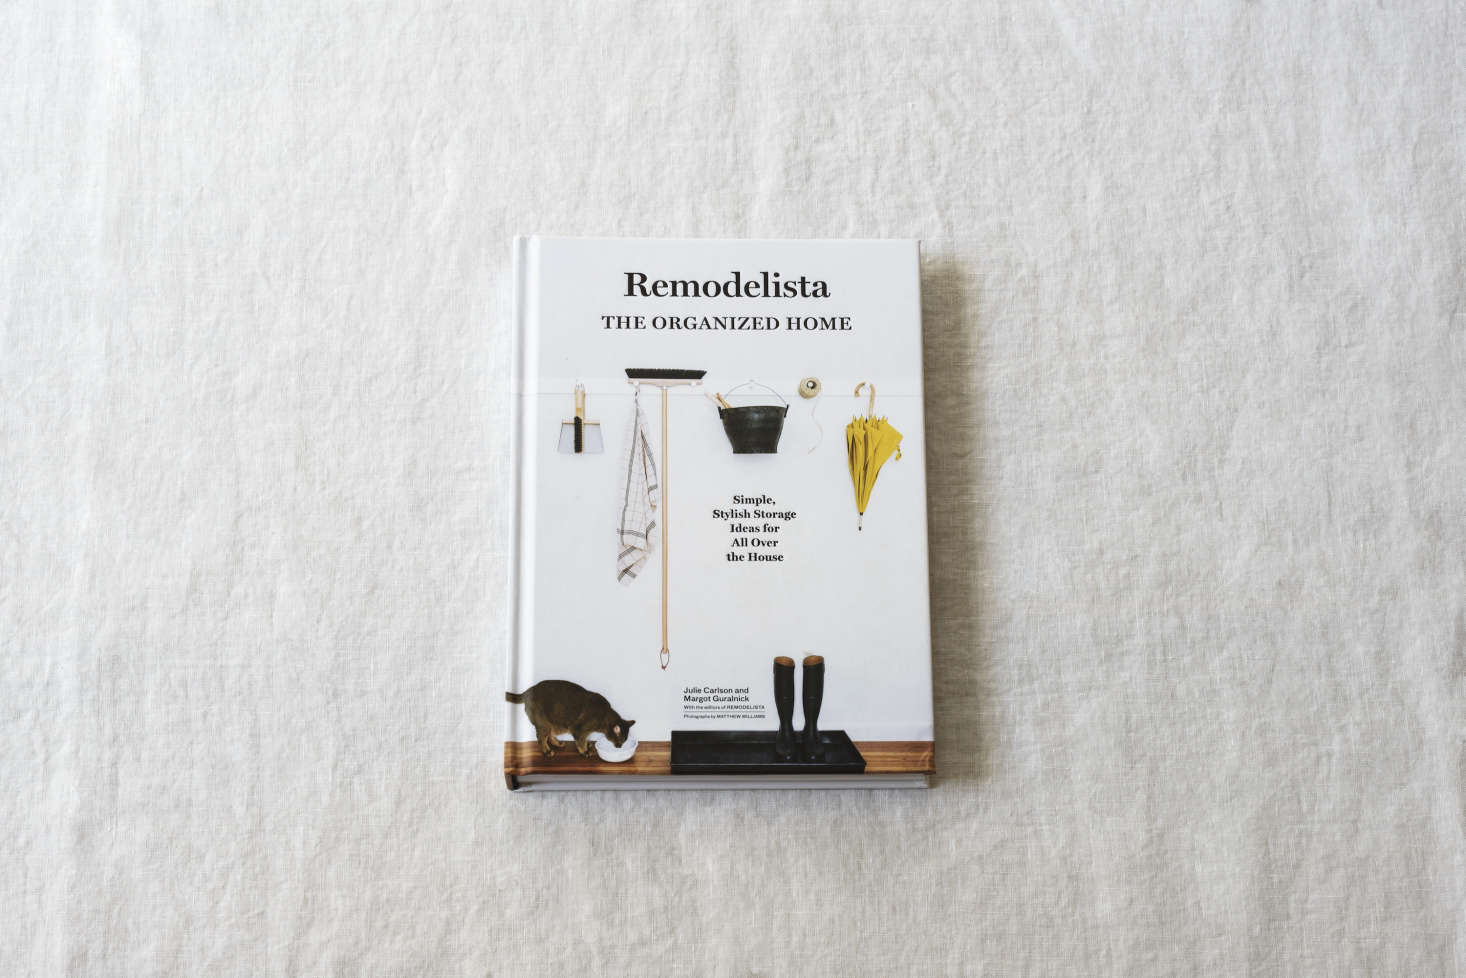 In Remodelista: The Organized Home, we present hundreds of ideas and strategies for conquering your home's problem zones (from entry to medicine cabinet to bedroom closet).